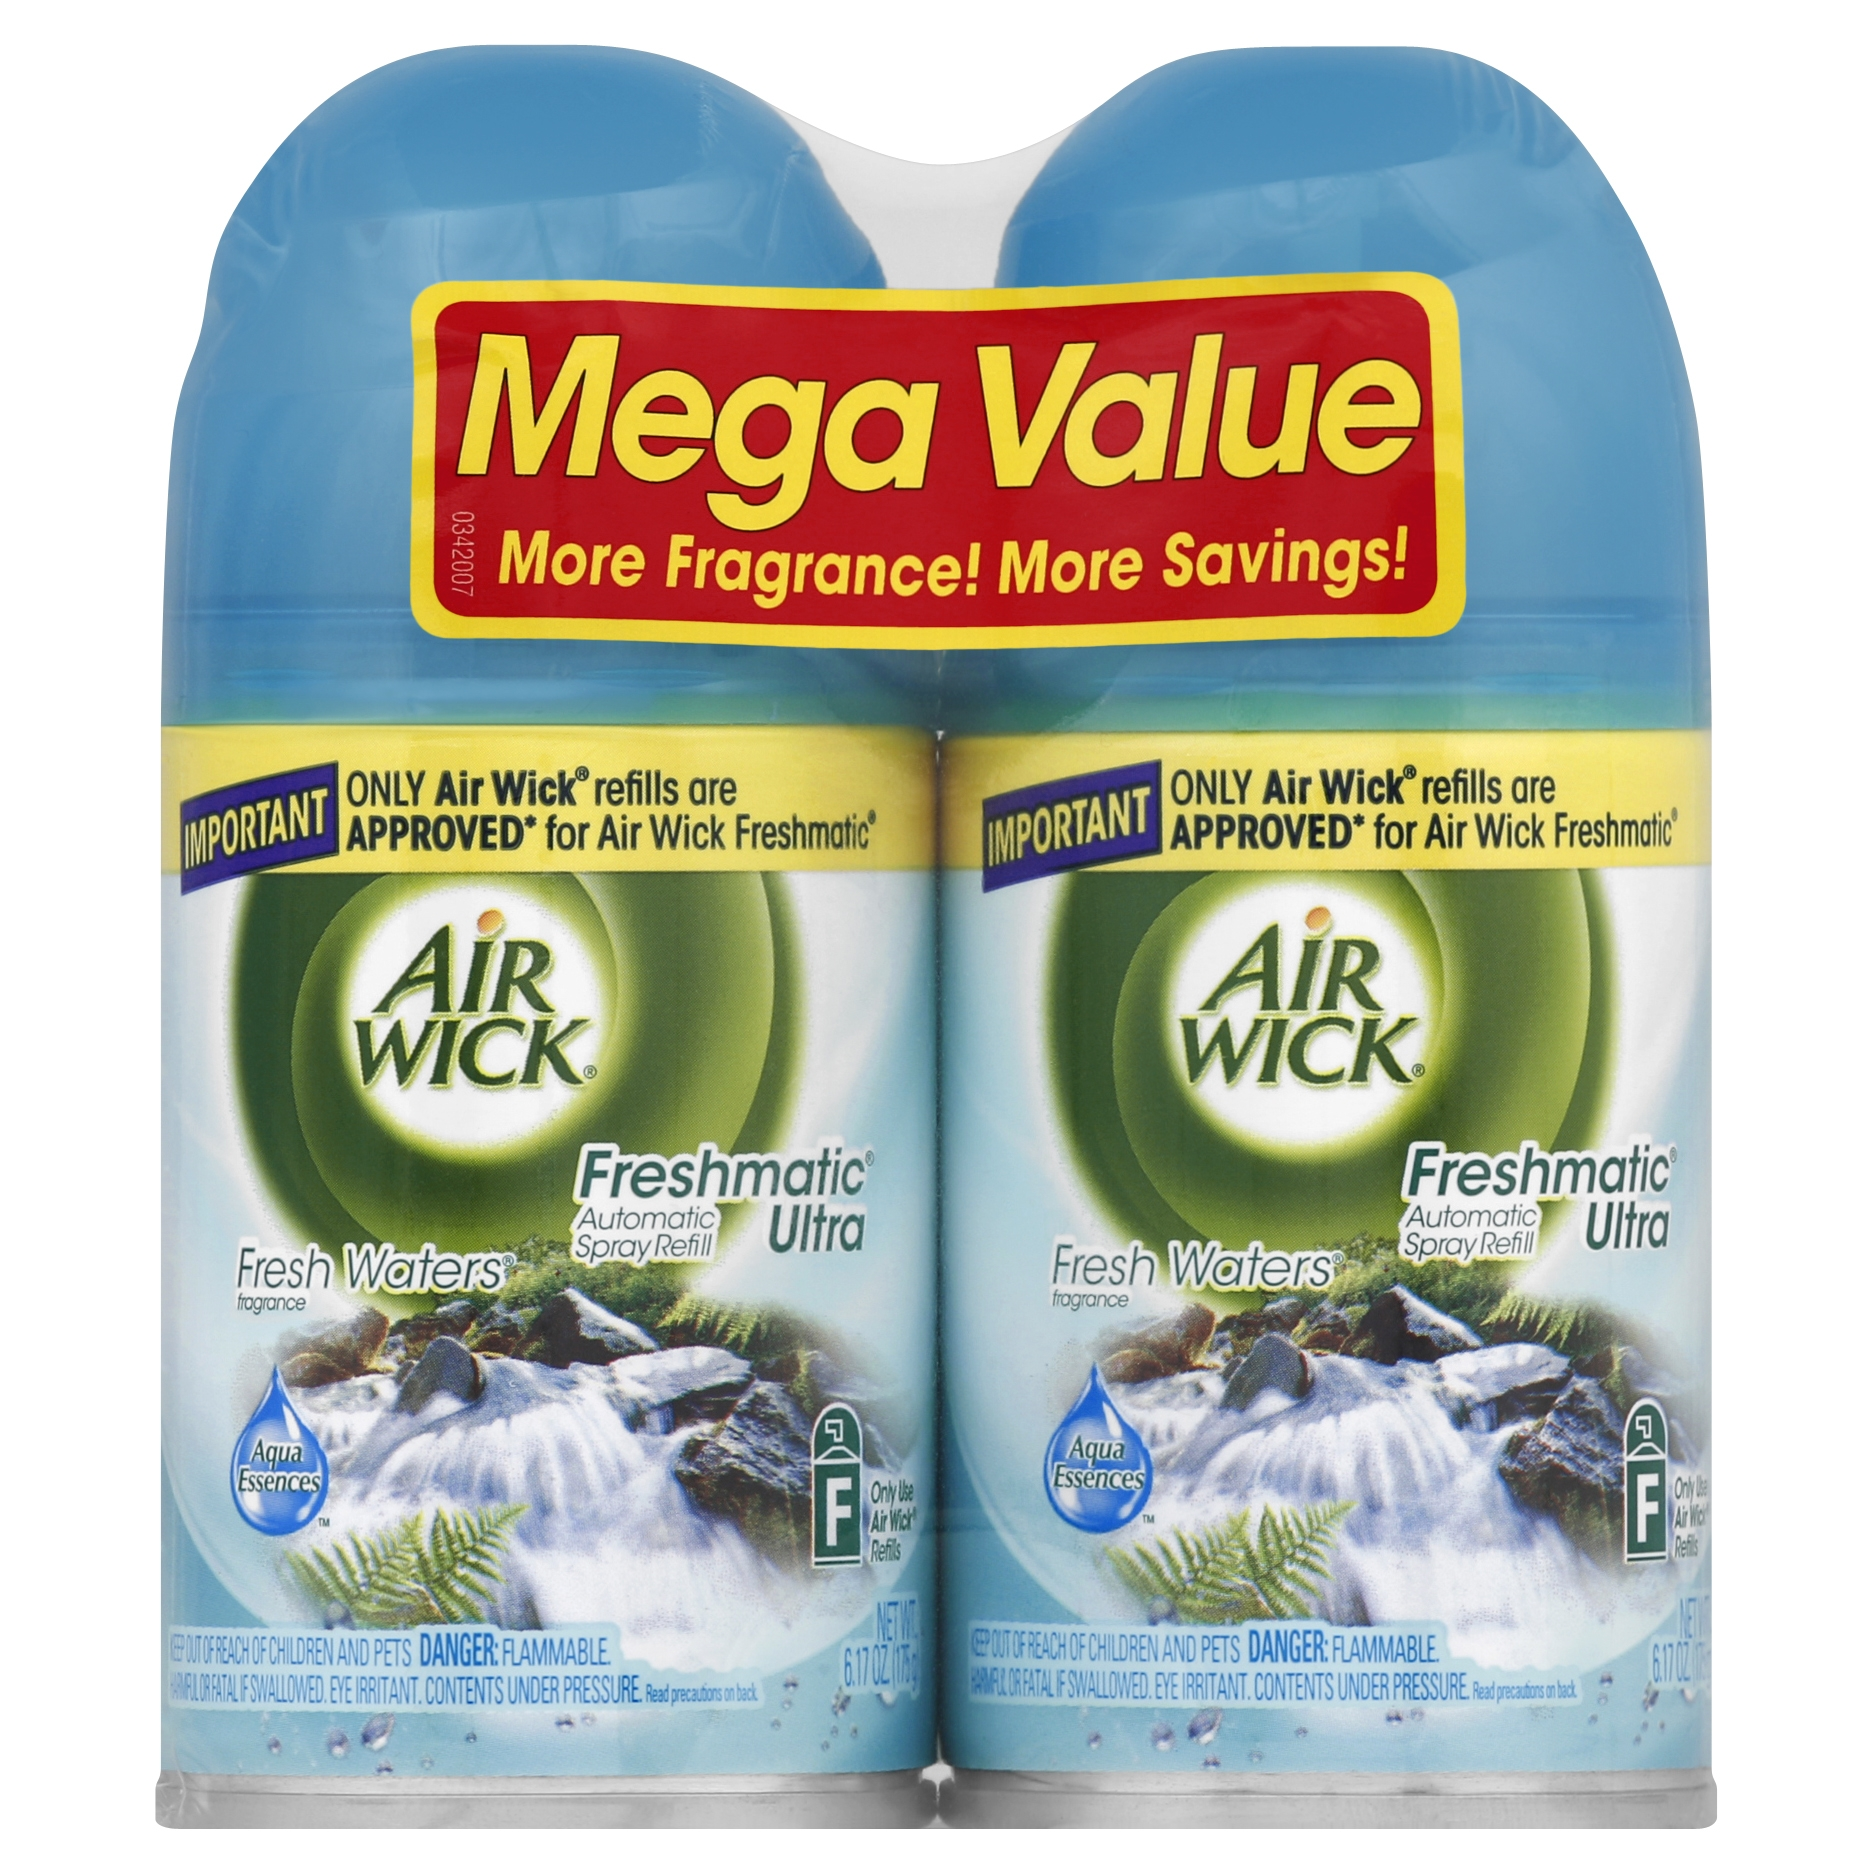 Air Wick Freshmatic Automatic Spray Air Freshener, Fresh Waters Scent, Twin Refills, 6.17 Ounce